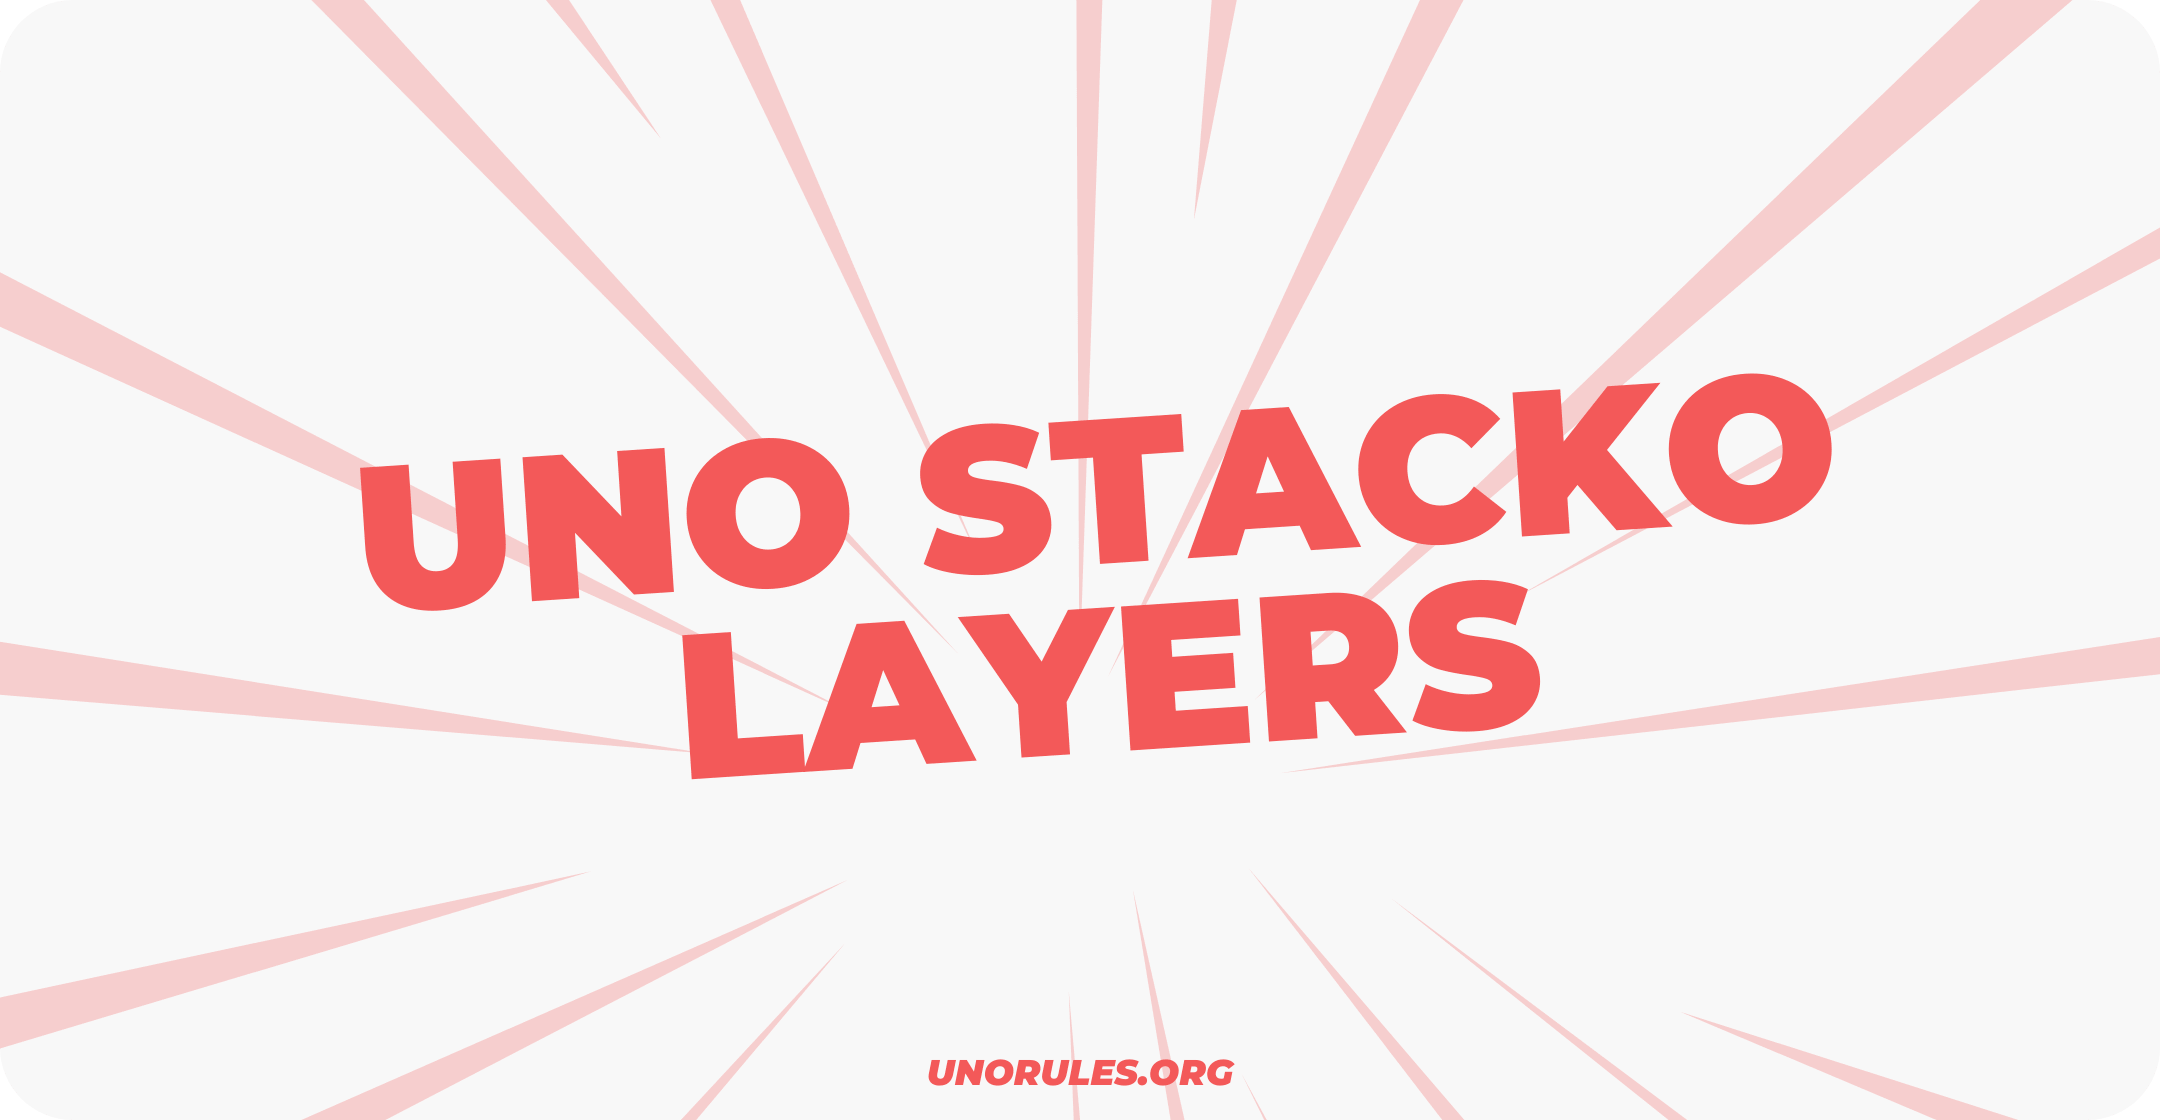 Uno Stacko layers